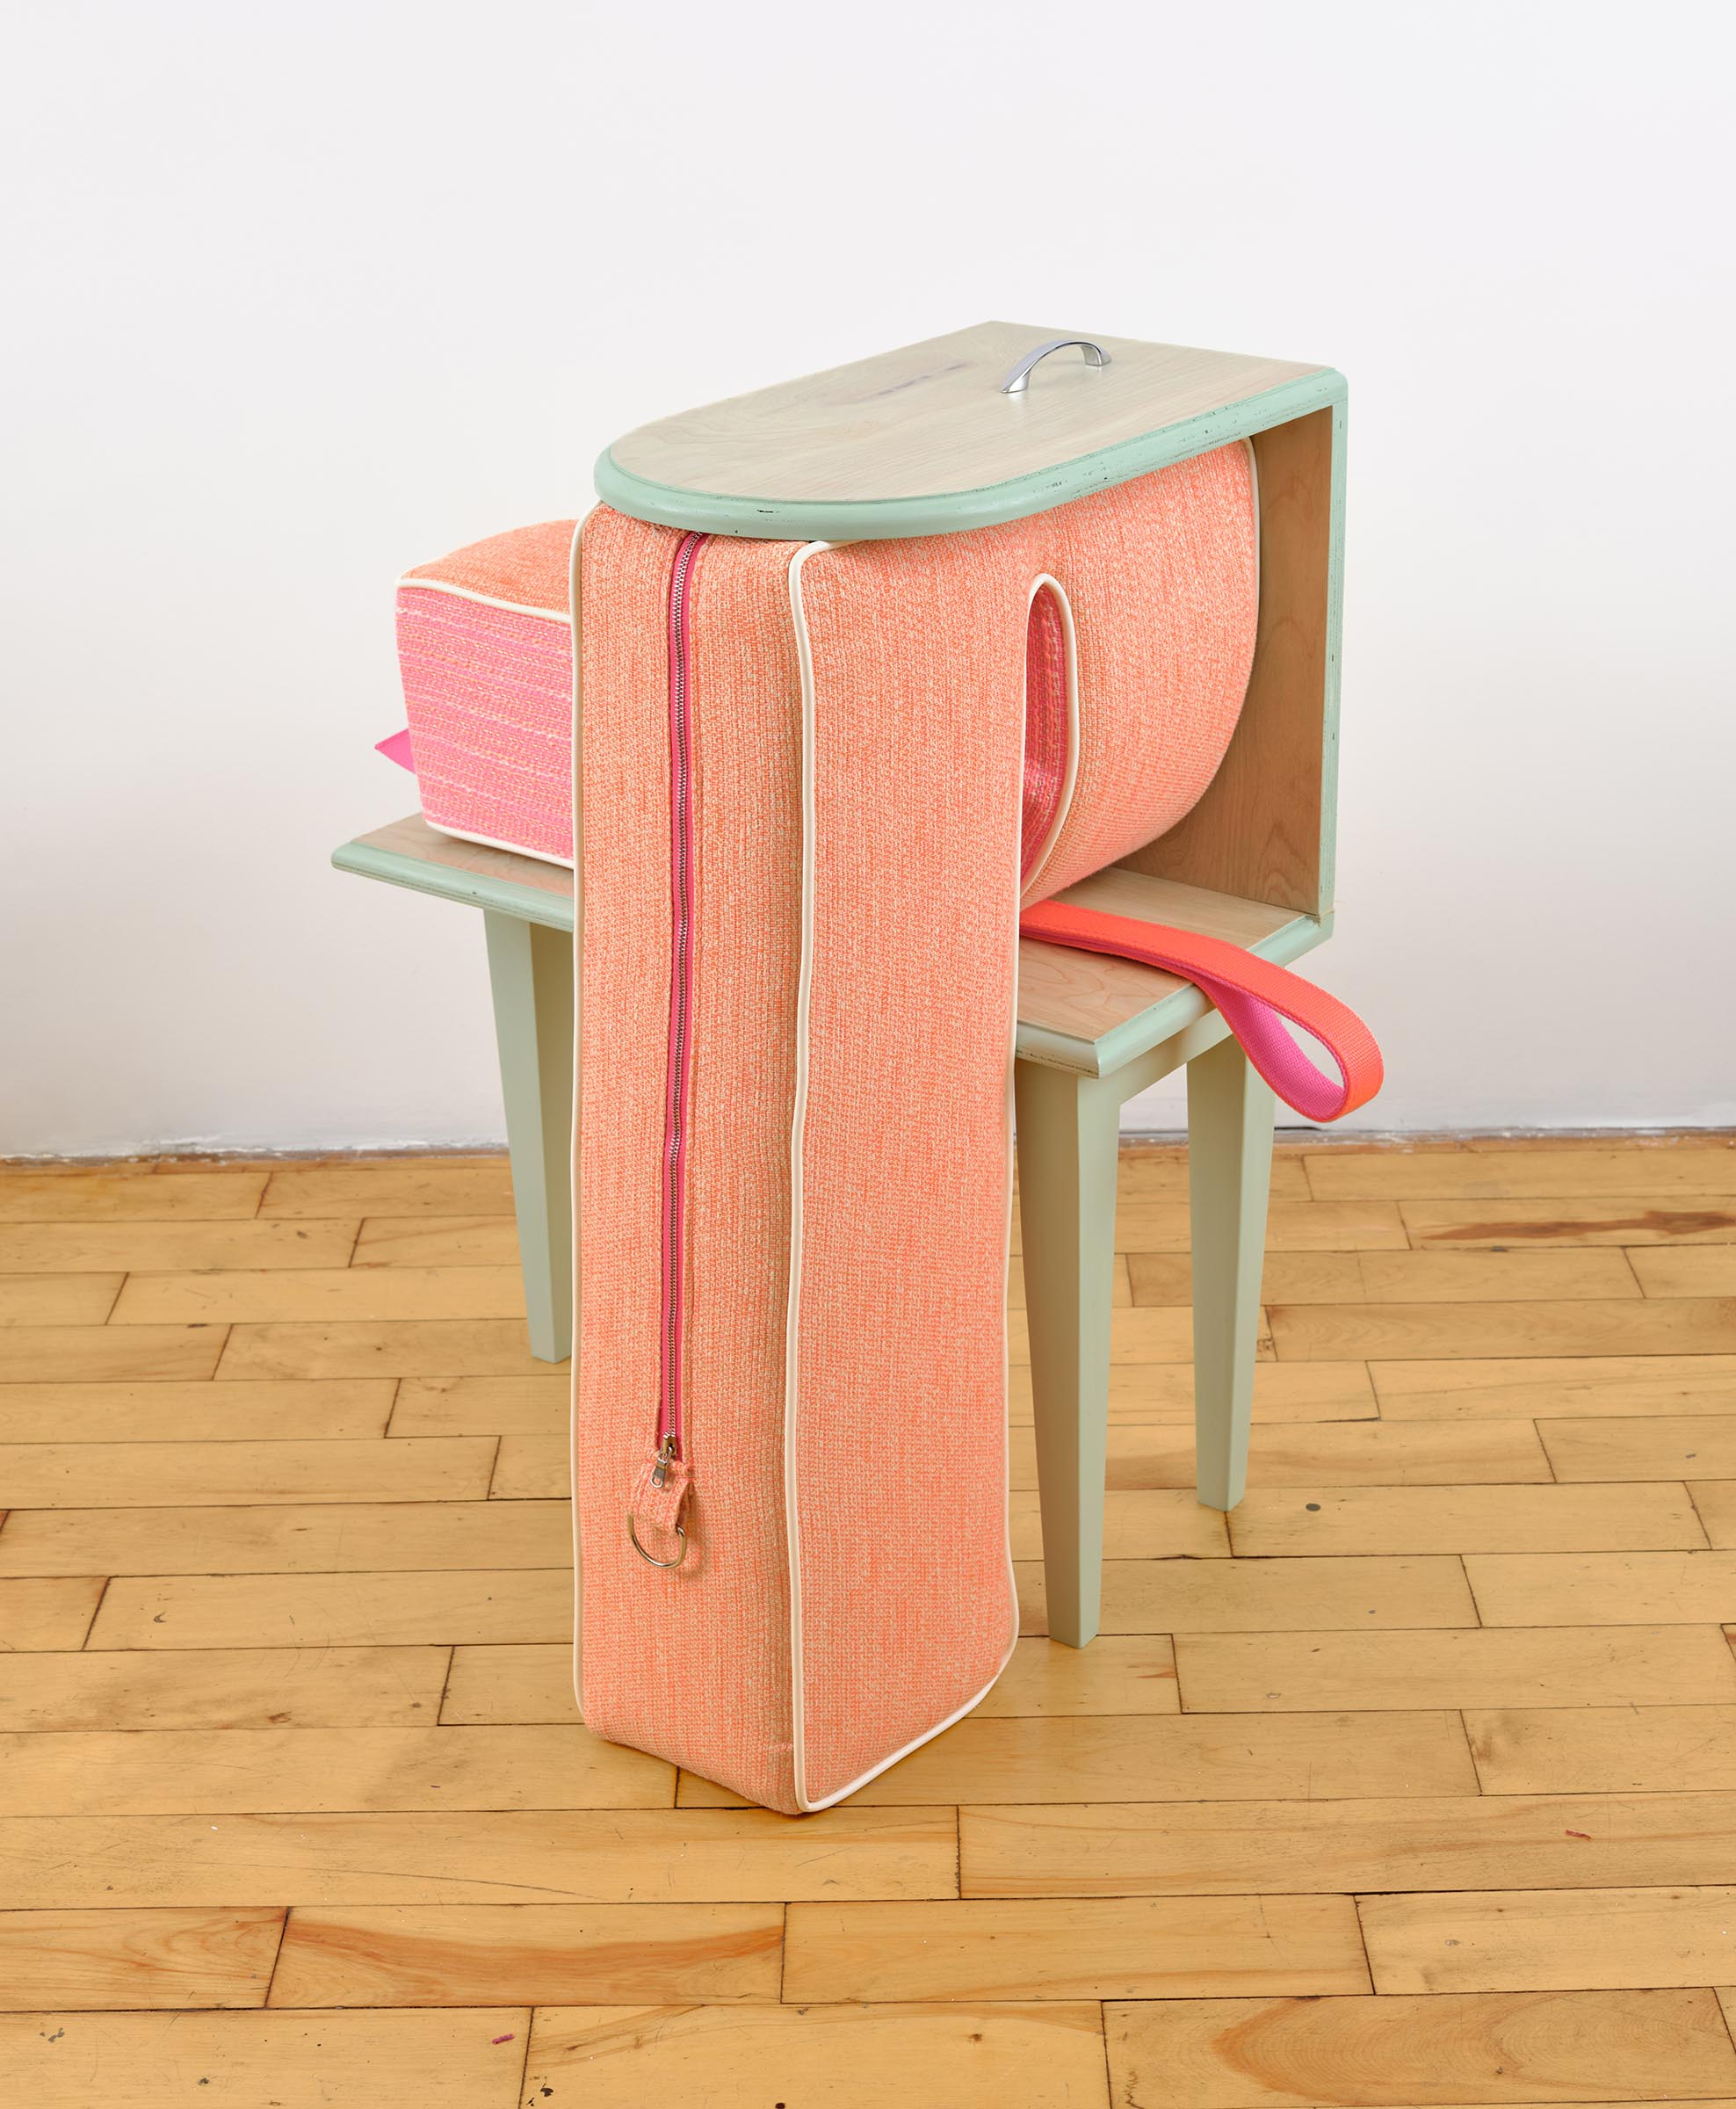 "Trish Tillman, Learning the Ropes Wood, wood stain, fabric, foam, zipper, webbing, drawer handle, hardware 30"" x 30"" x 17"" 2019"